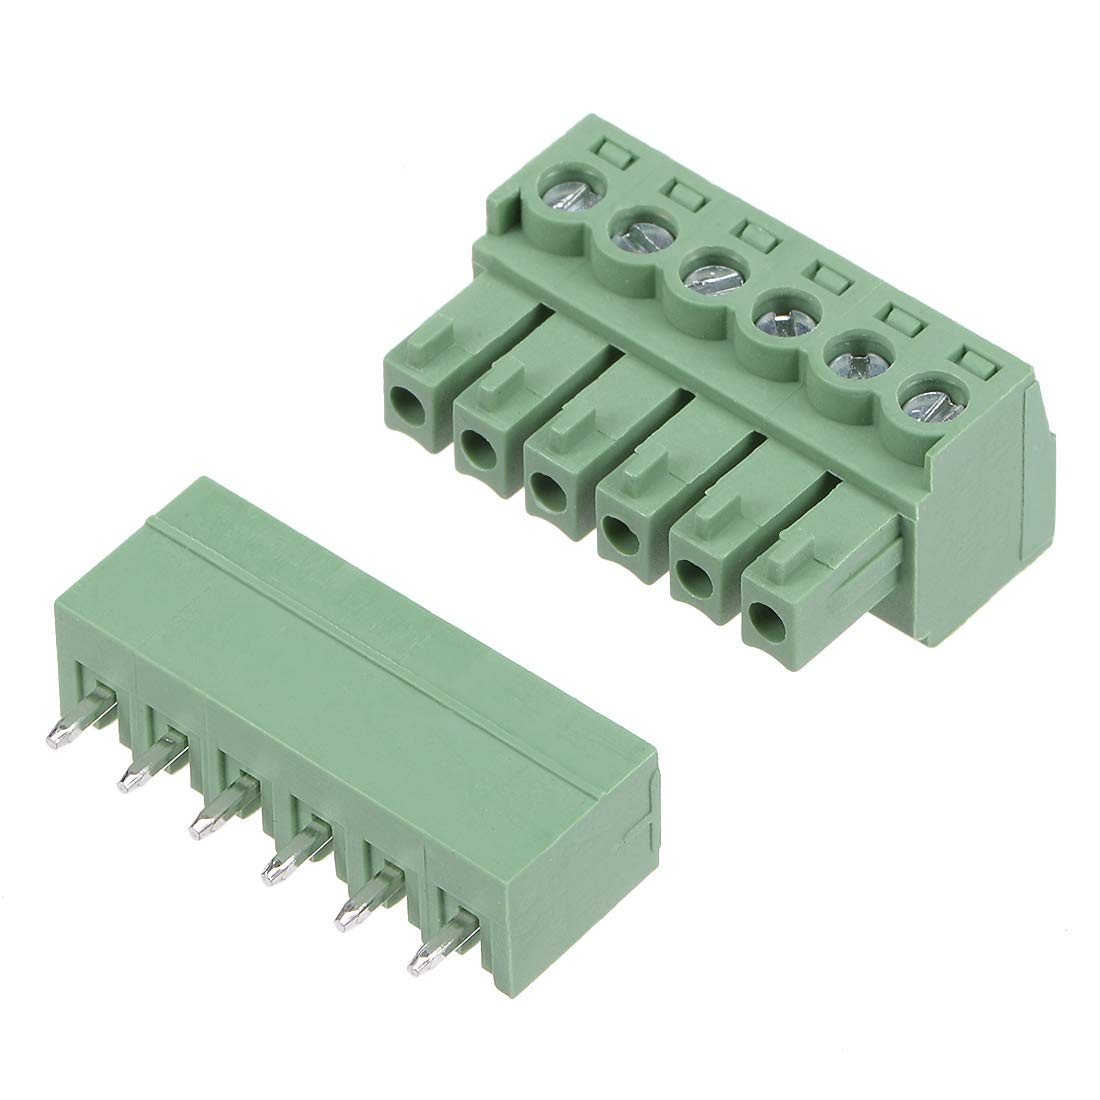 uxcell 4 Pairs 3.81mm Pitch 6Pin Pluggable Terminal Block Connector Male and Female for PCB